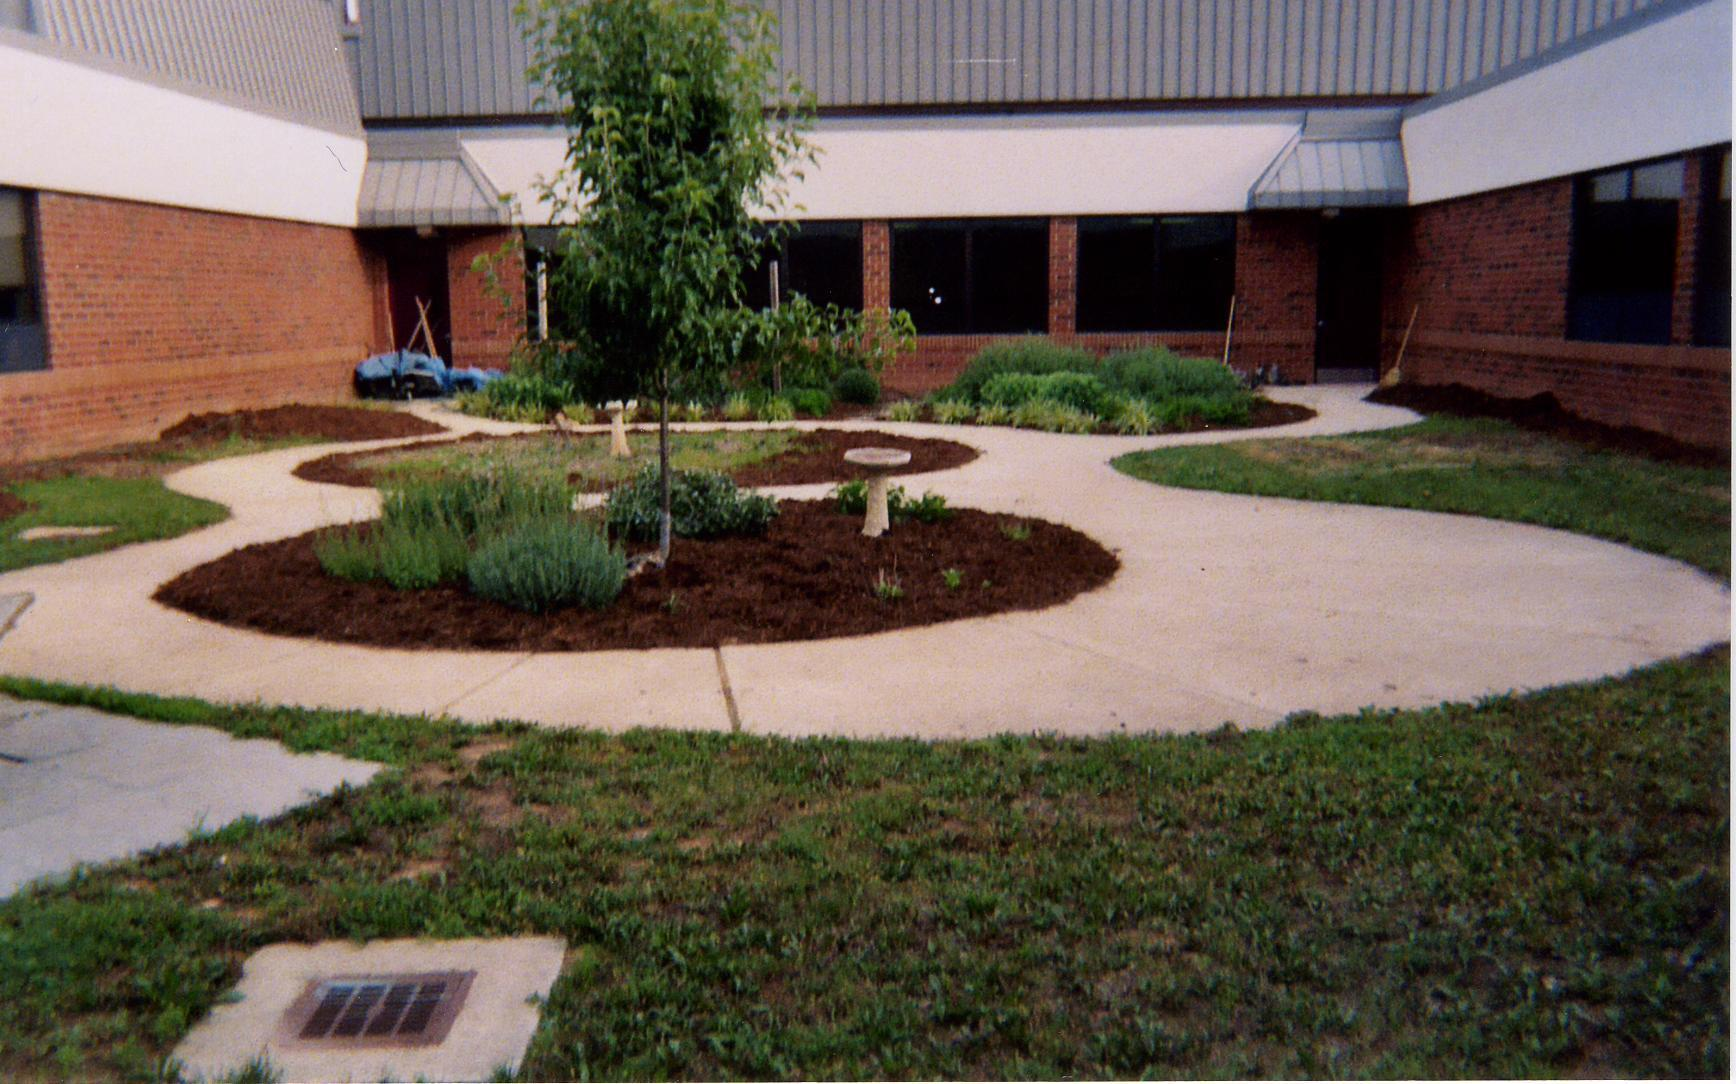 Courtyard in May